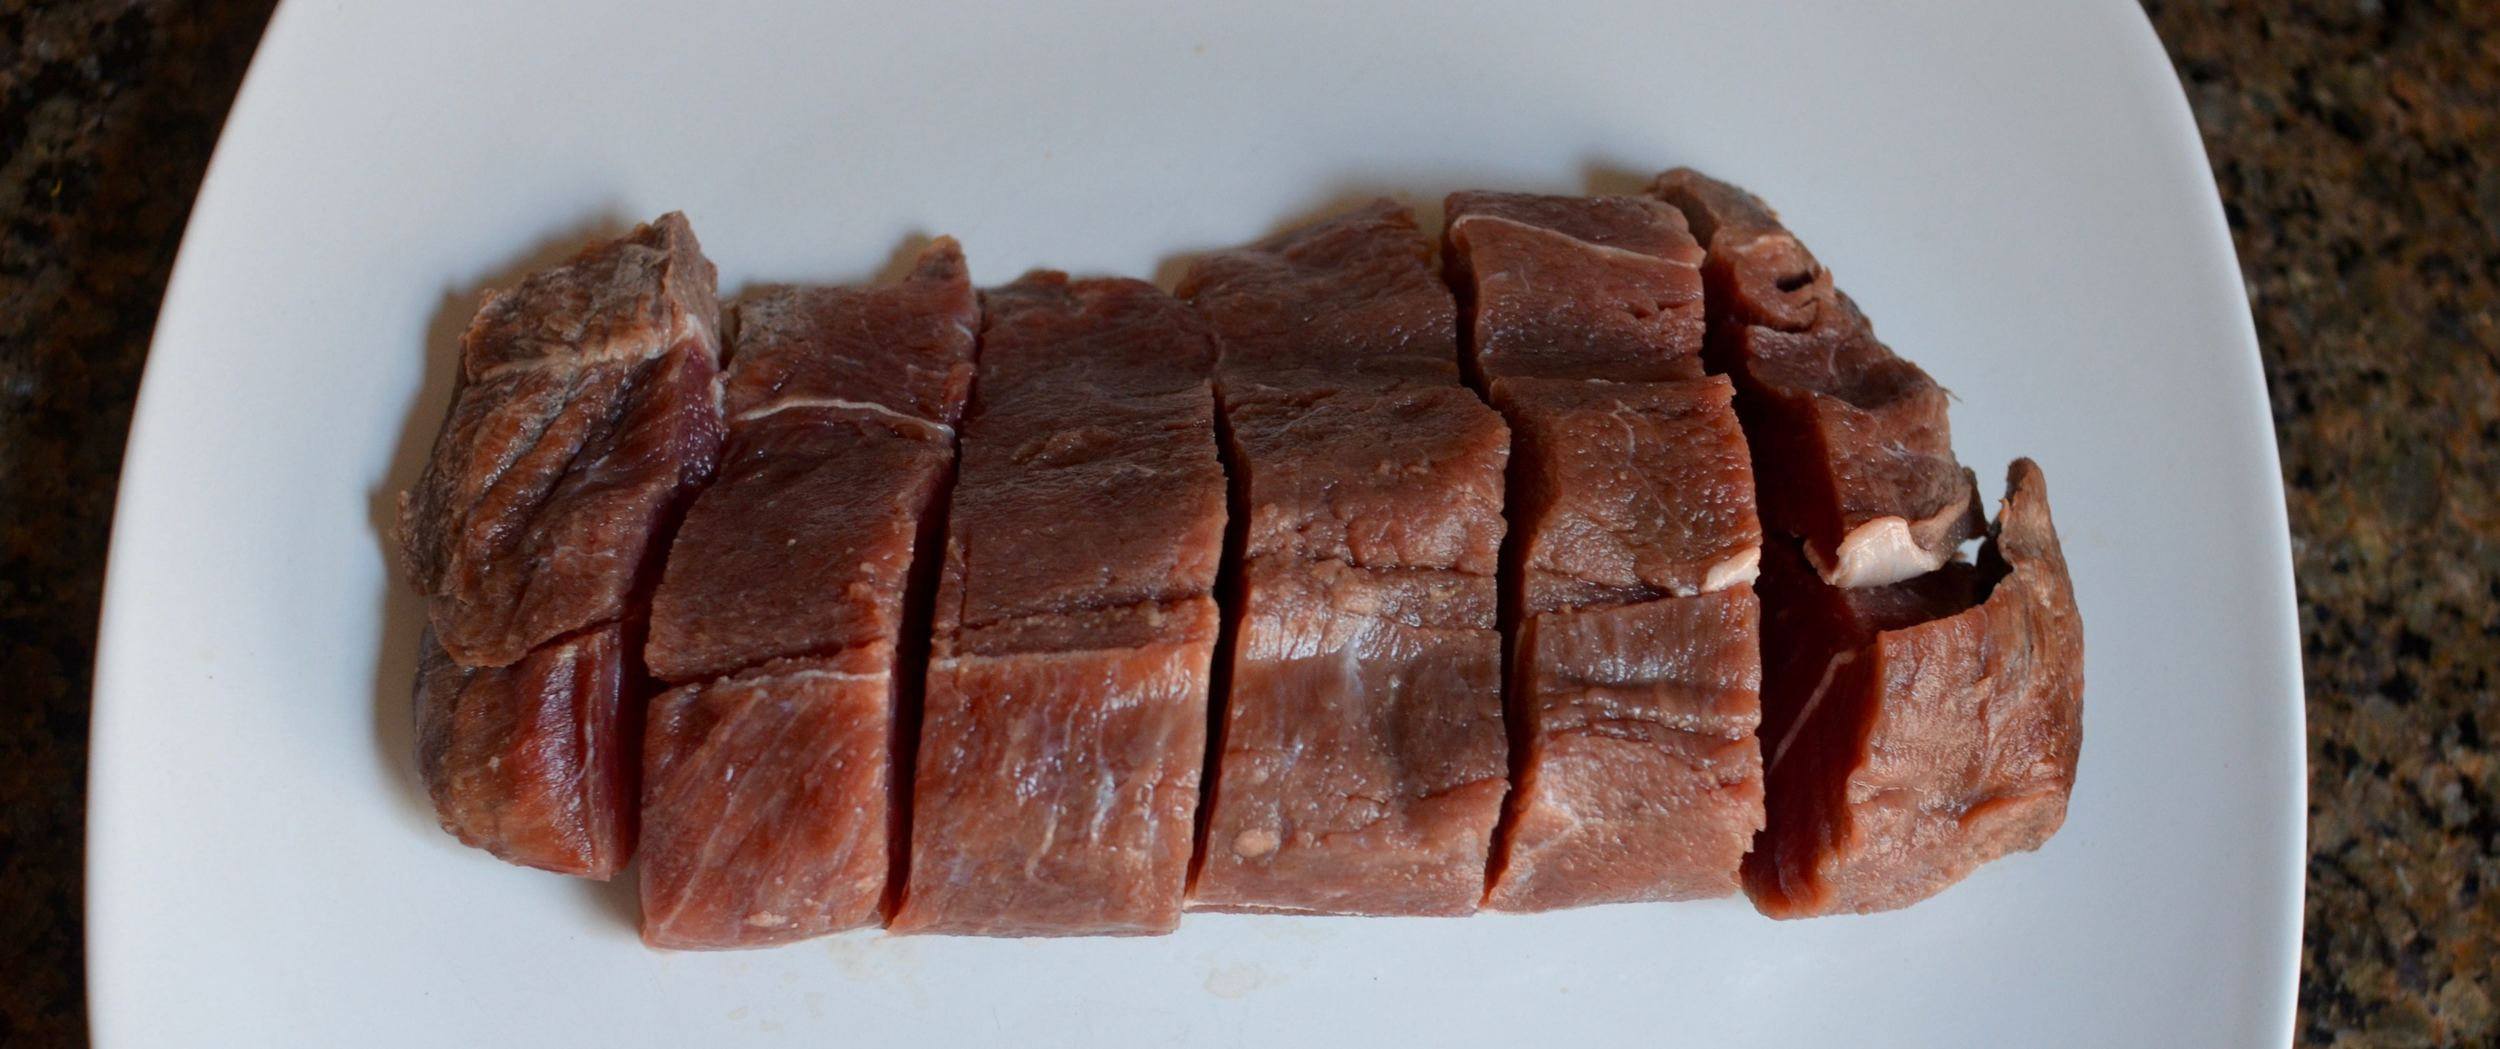 Sliced steak, about 1 x 1 x 3 inches. You can make smaller pieces or keep it as one whole steak.